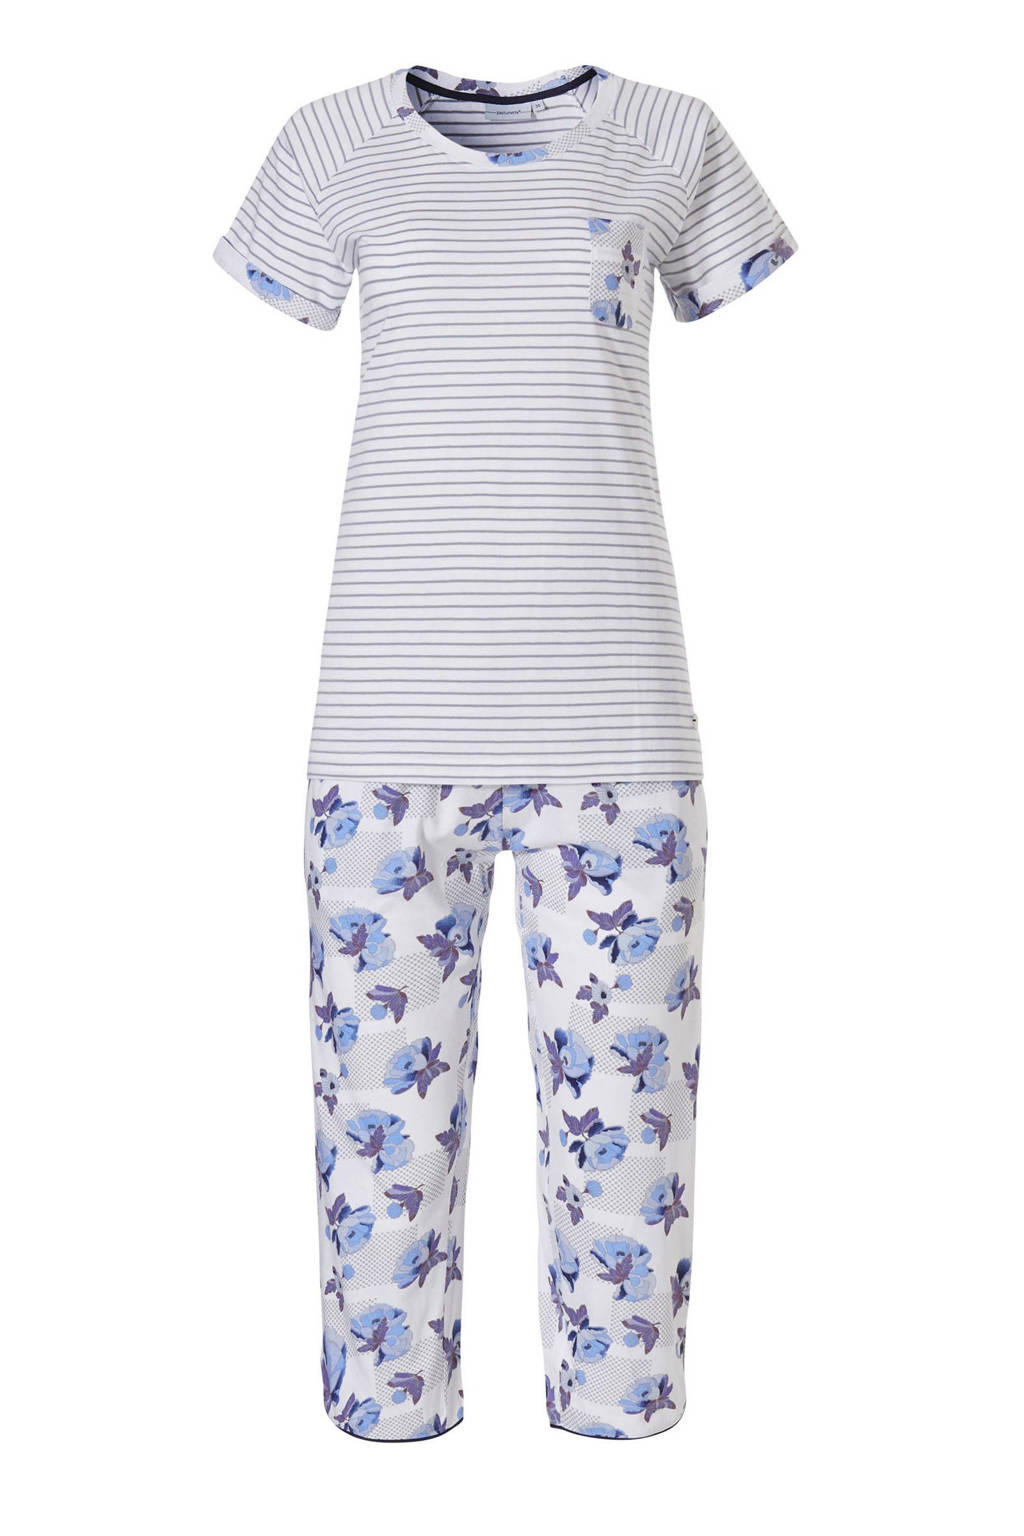 Pastunette pyjama met all over print blauw, Blauw/wit